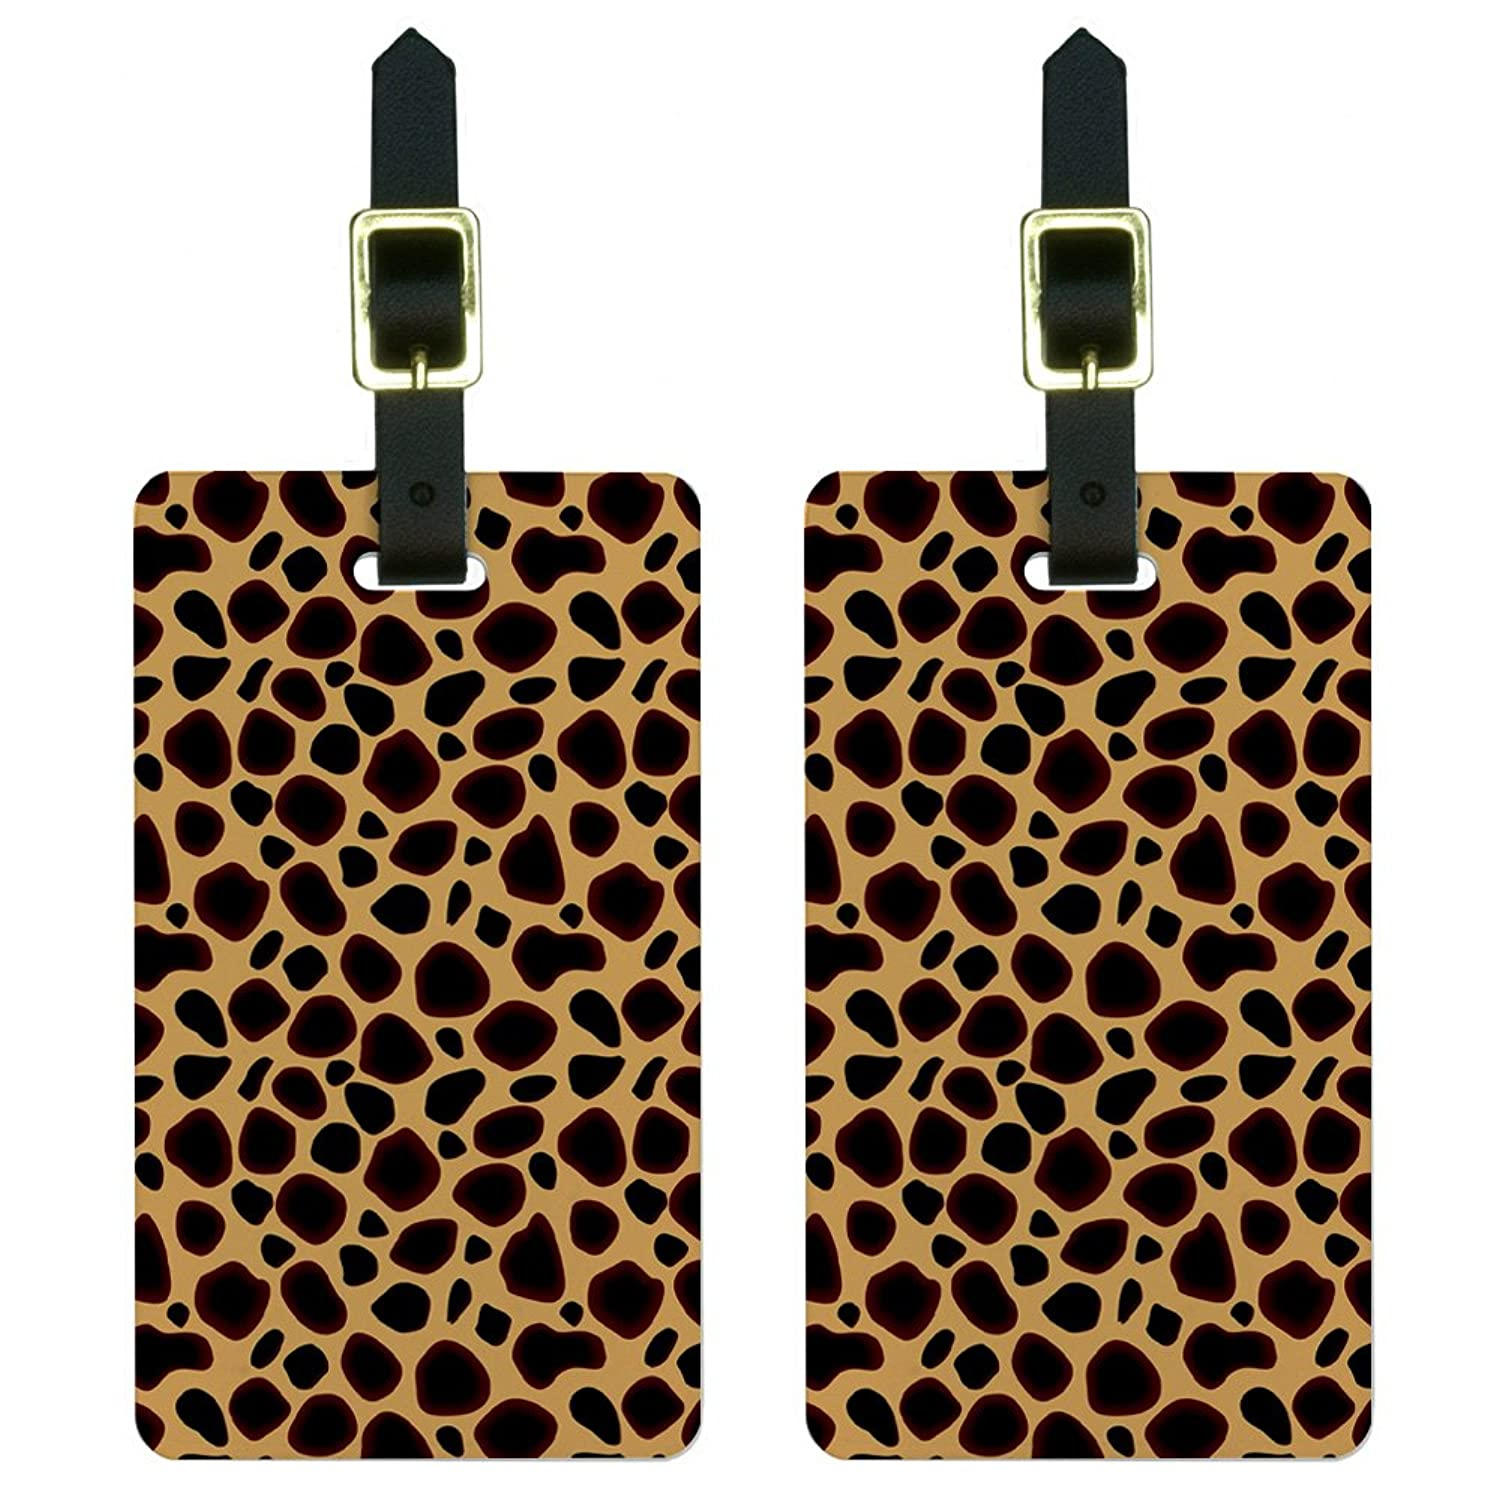 Cheetah Print Luggage Tags Suitcase Carry-On ID Set of 2 the cheetah girls the cheetah girls 2 special edition soundtrack cd dvd